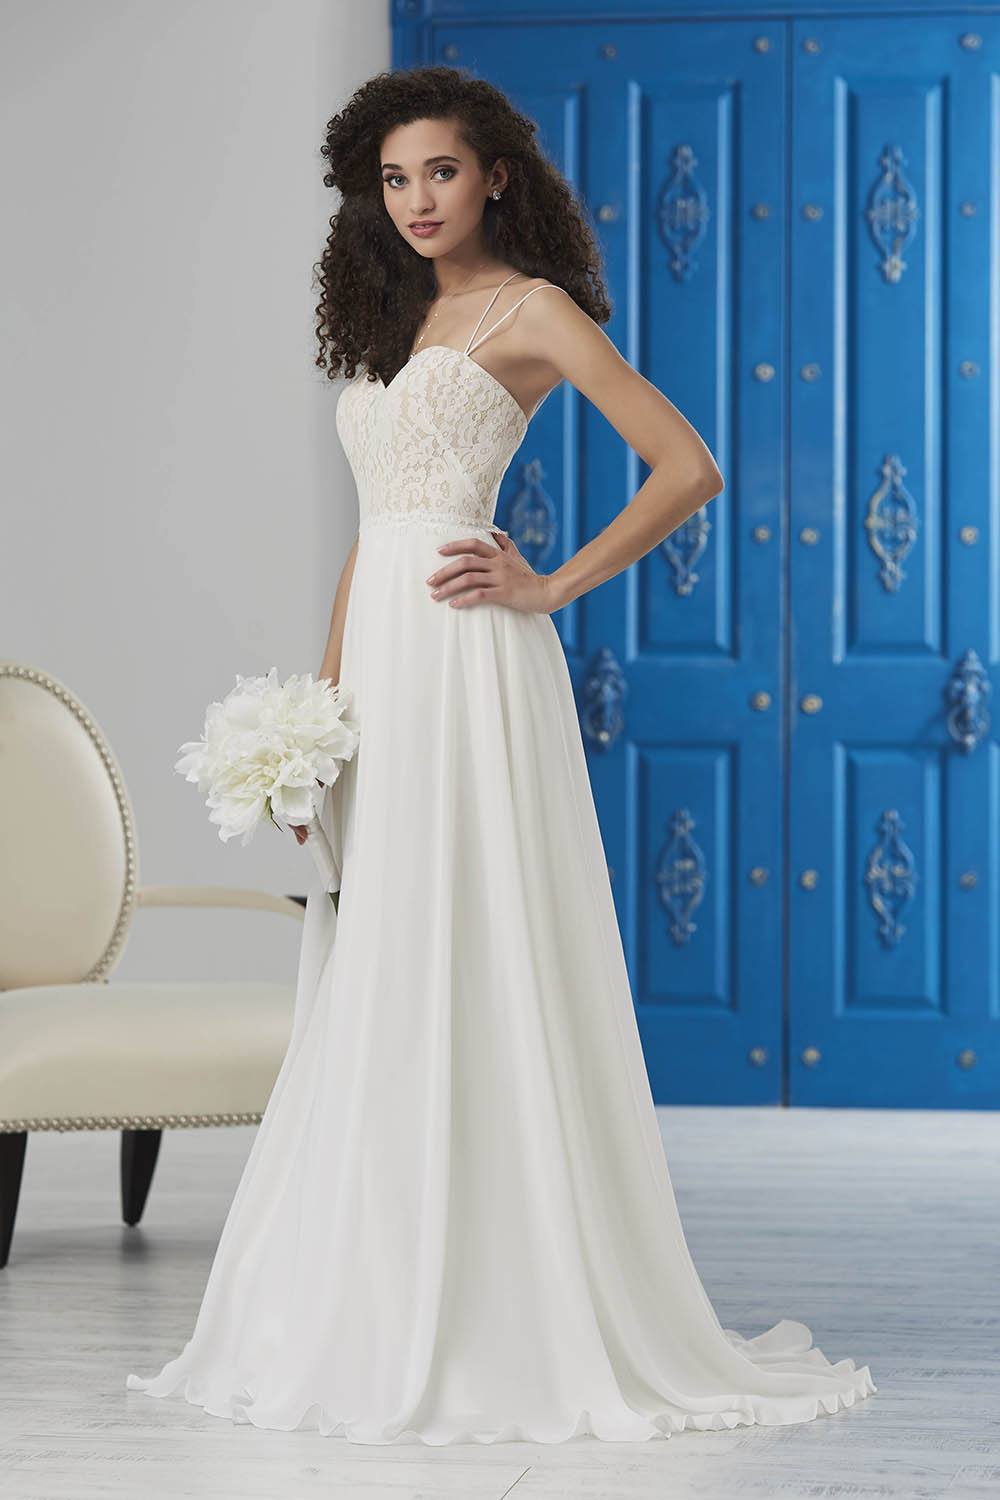 bridesmaid-dresses-jacquelin-bridals-canada-26207